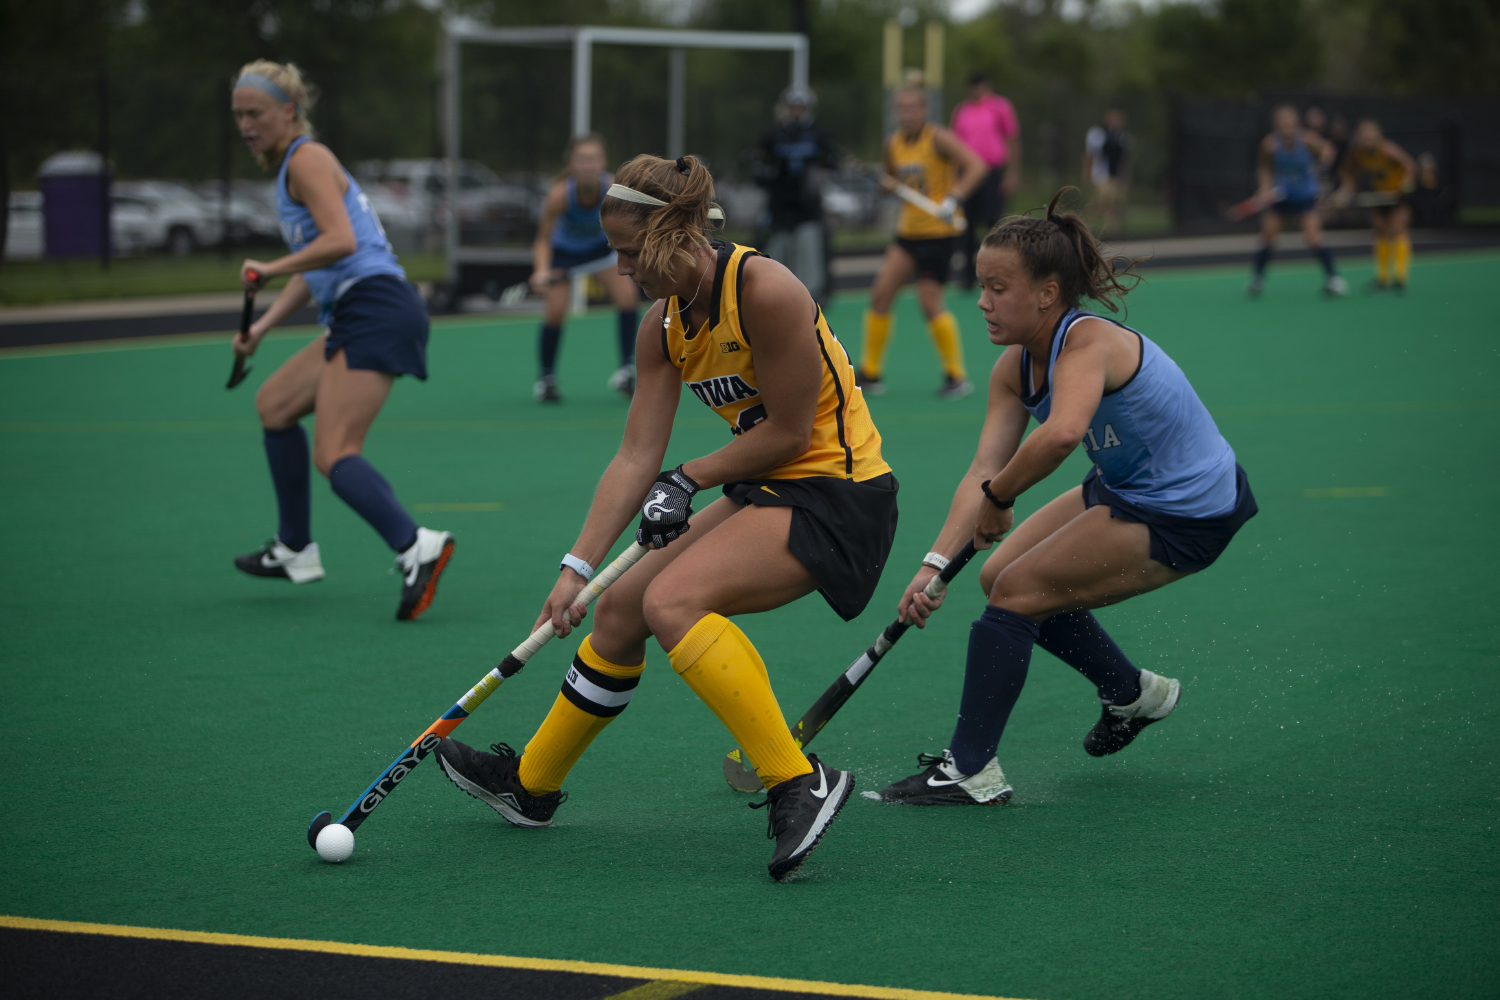 Iowa midfielder Sophie Sunderland protects the ball during a field hockey game between Iowa and Columbia at Grant Field on Sunday, September 8, 2019. The Hawkeyes defeated the Lions, 3-1.